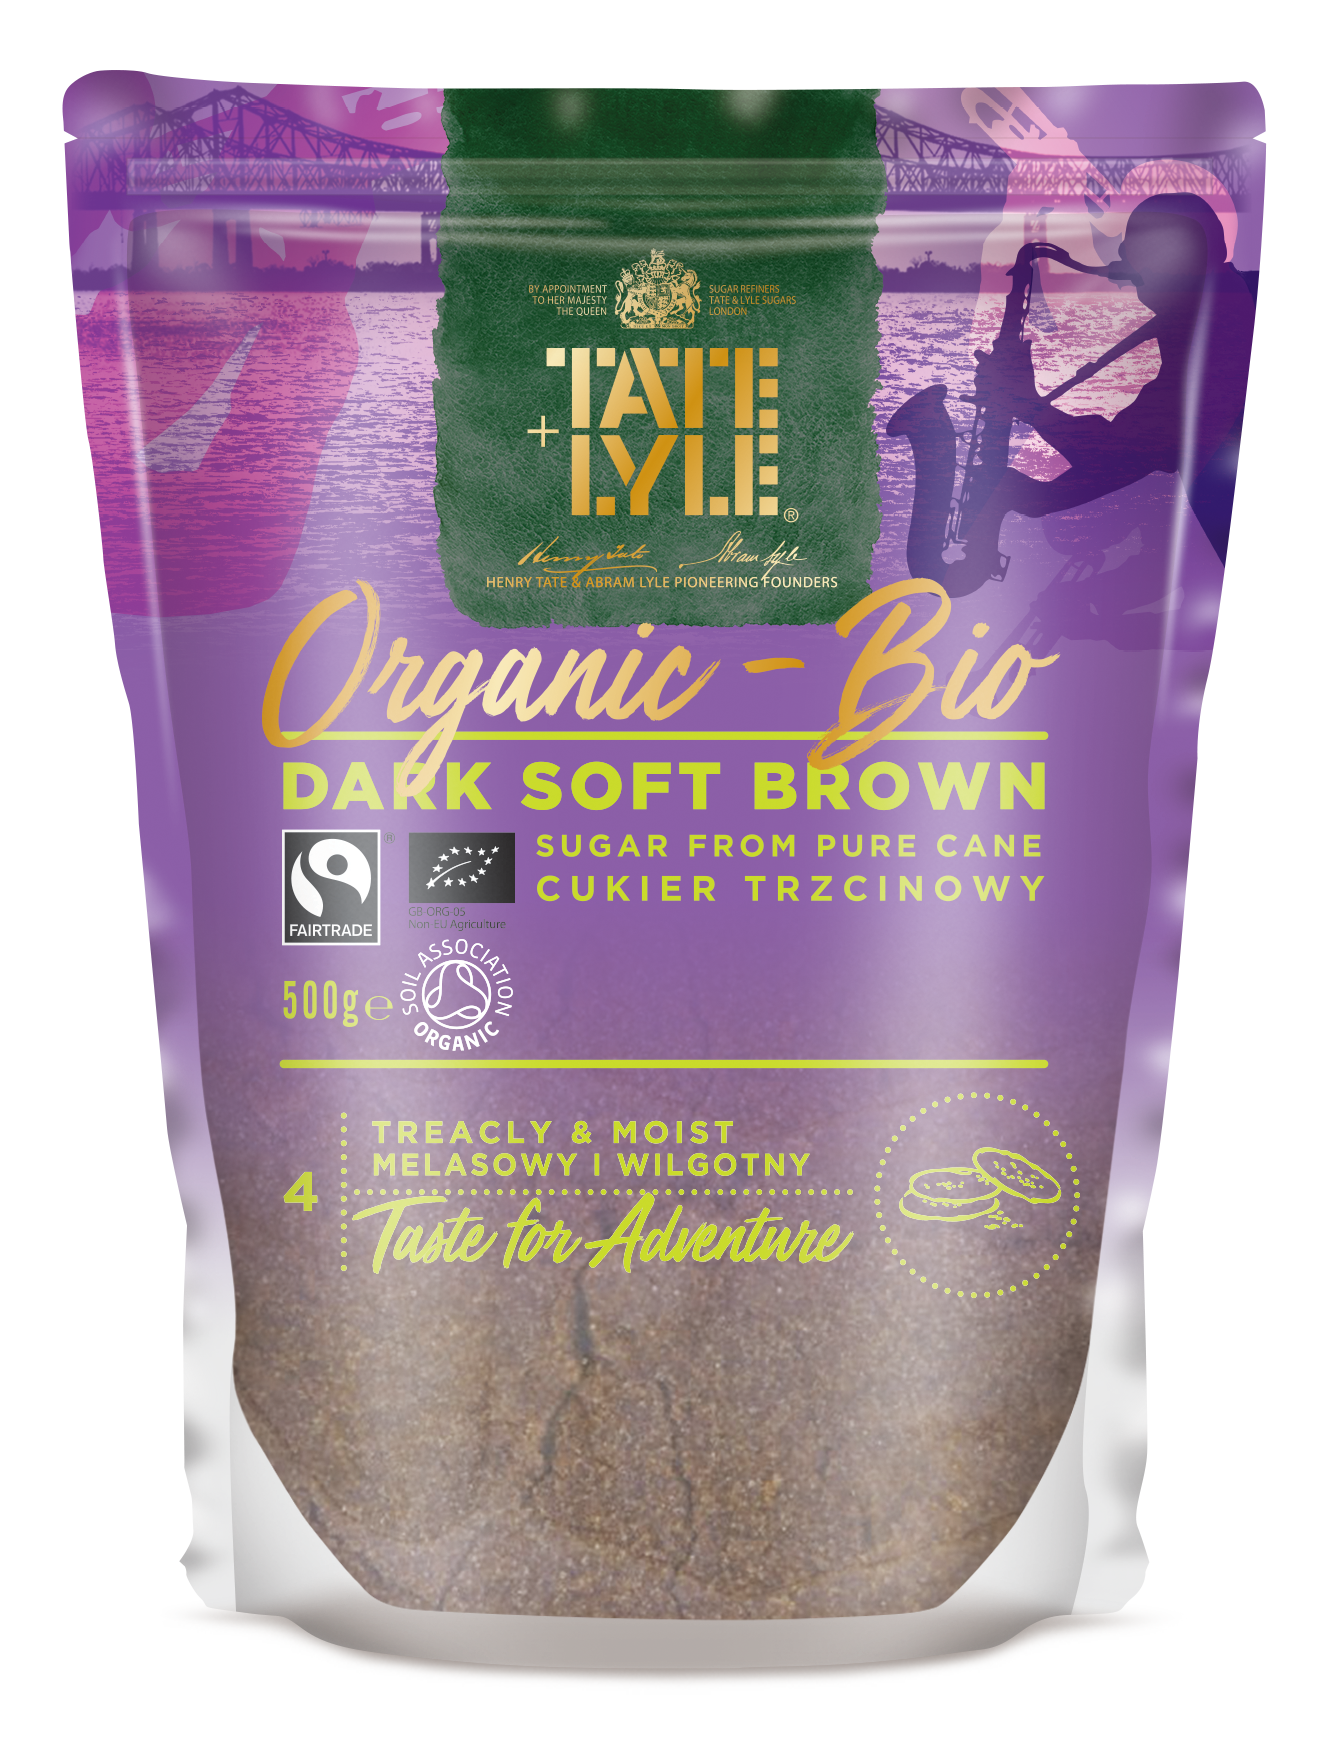 Organic Bio Dark Soft Brown Sugar